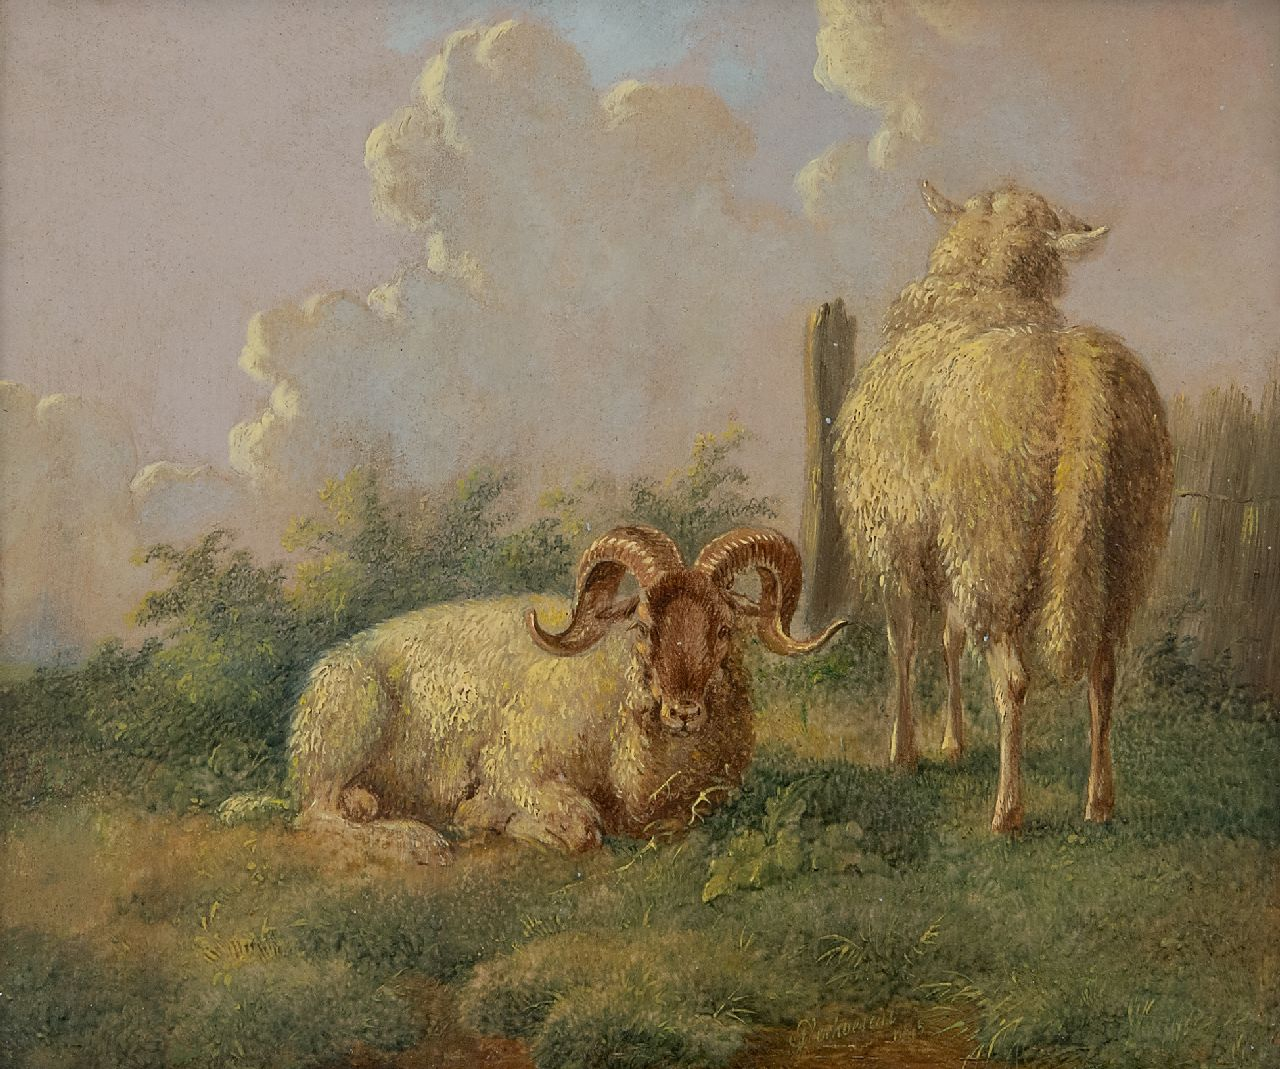 Verhoesen A.  | Albertus Verhoesen | Paintings offered for sale | Sheep on a summary pasture, oil on panel 14.5 x 16.5 cm, signed r.o.t.c. and dated 1845